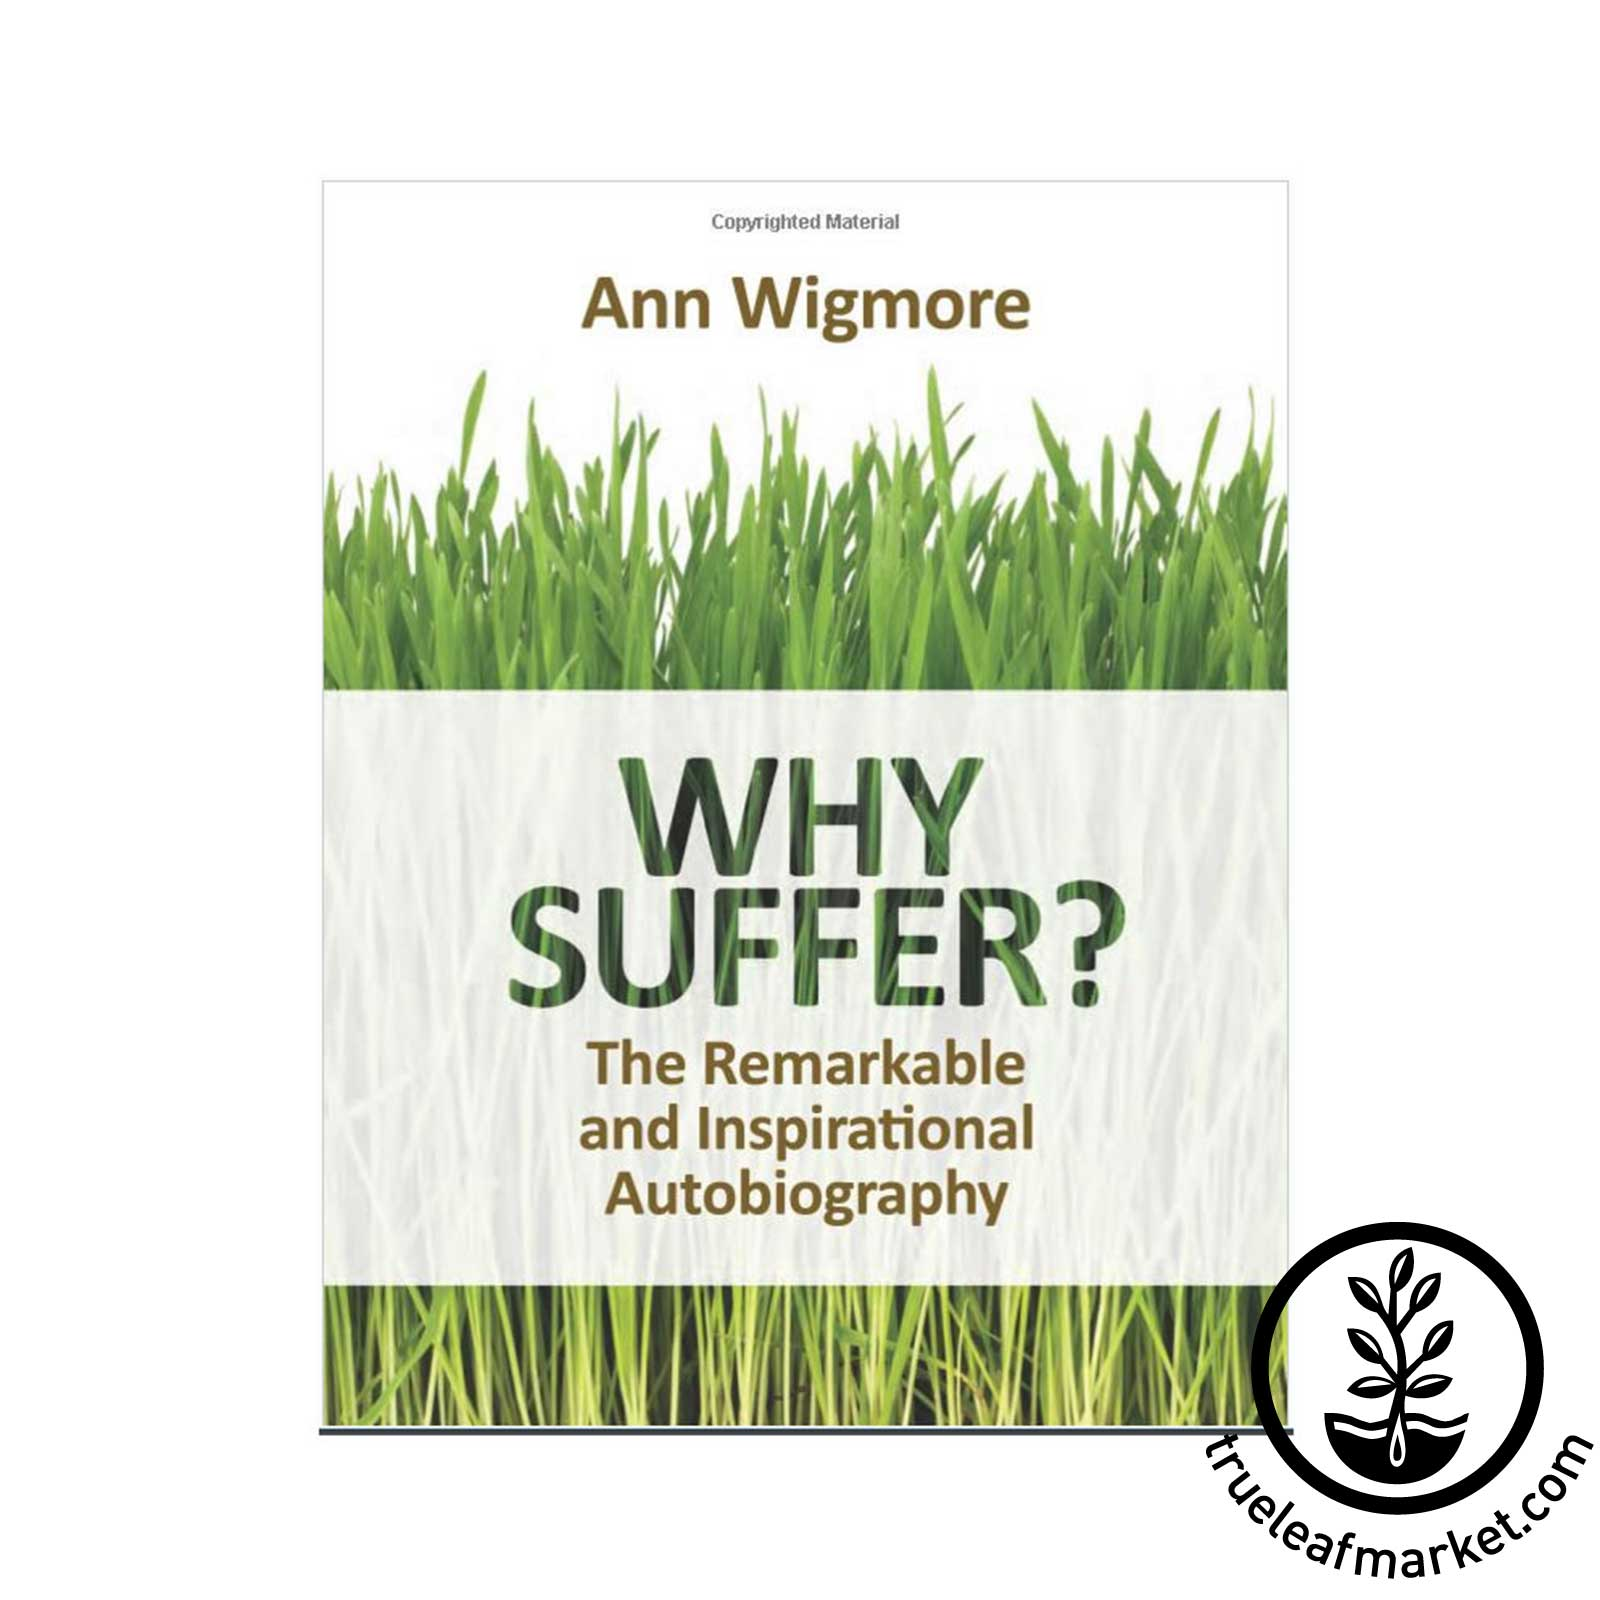 Book: Why Suffer by Ann Wigmore